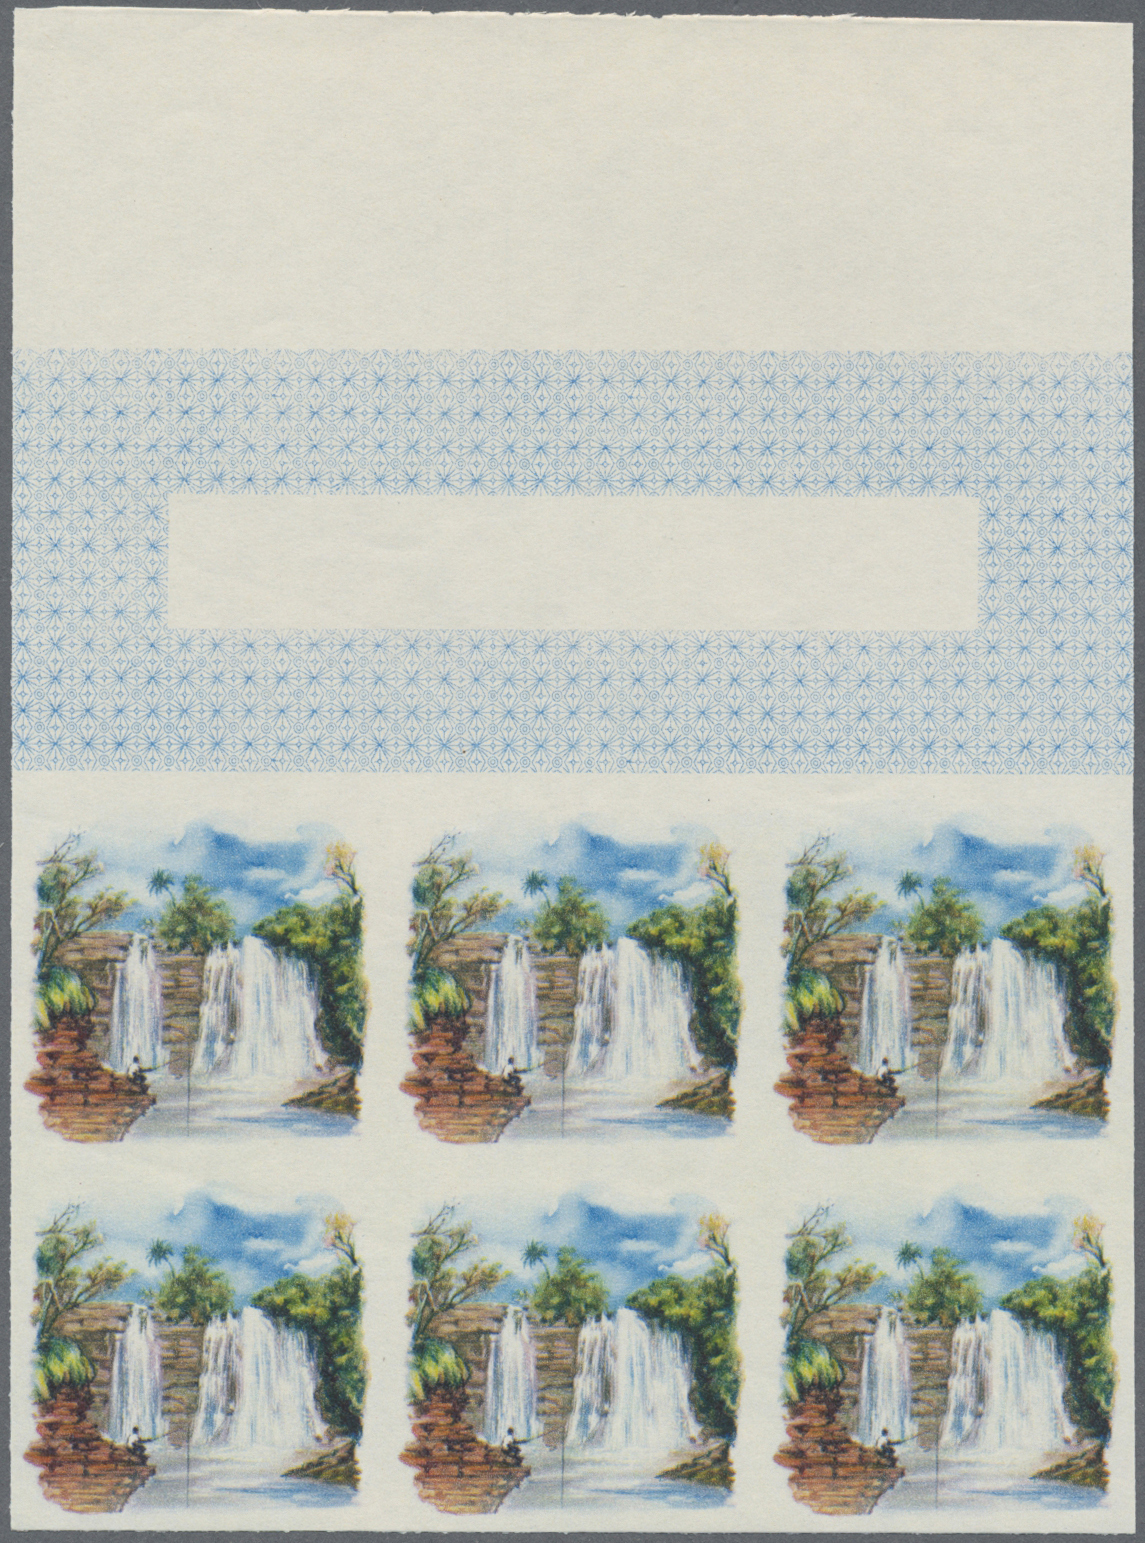 Lot 12863 - thematik: wasserfälle / waterfalls  -  Auktionshaus Christoph Gärtner GmbH & Co. KG Single lots Philately Overseas & Europe. Auction #39 Day 4